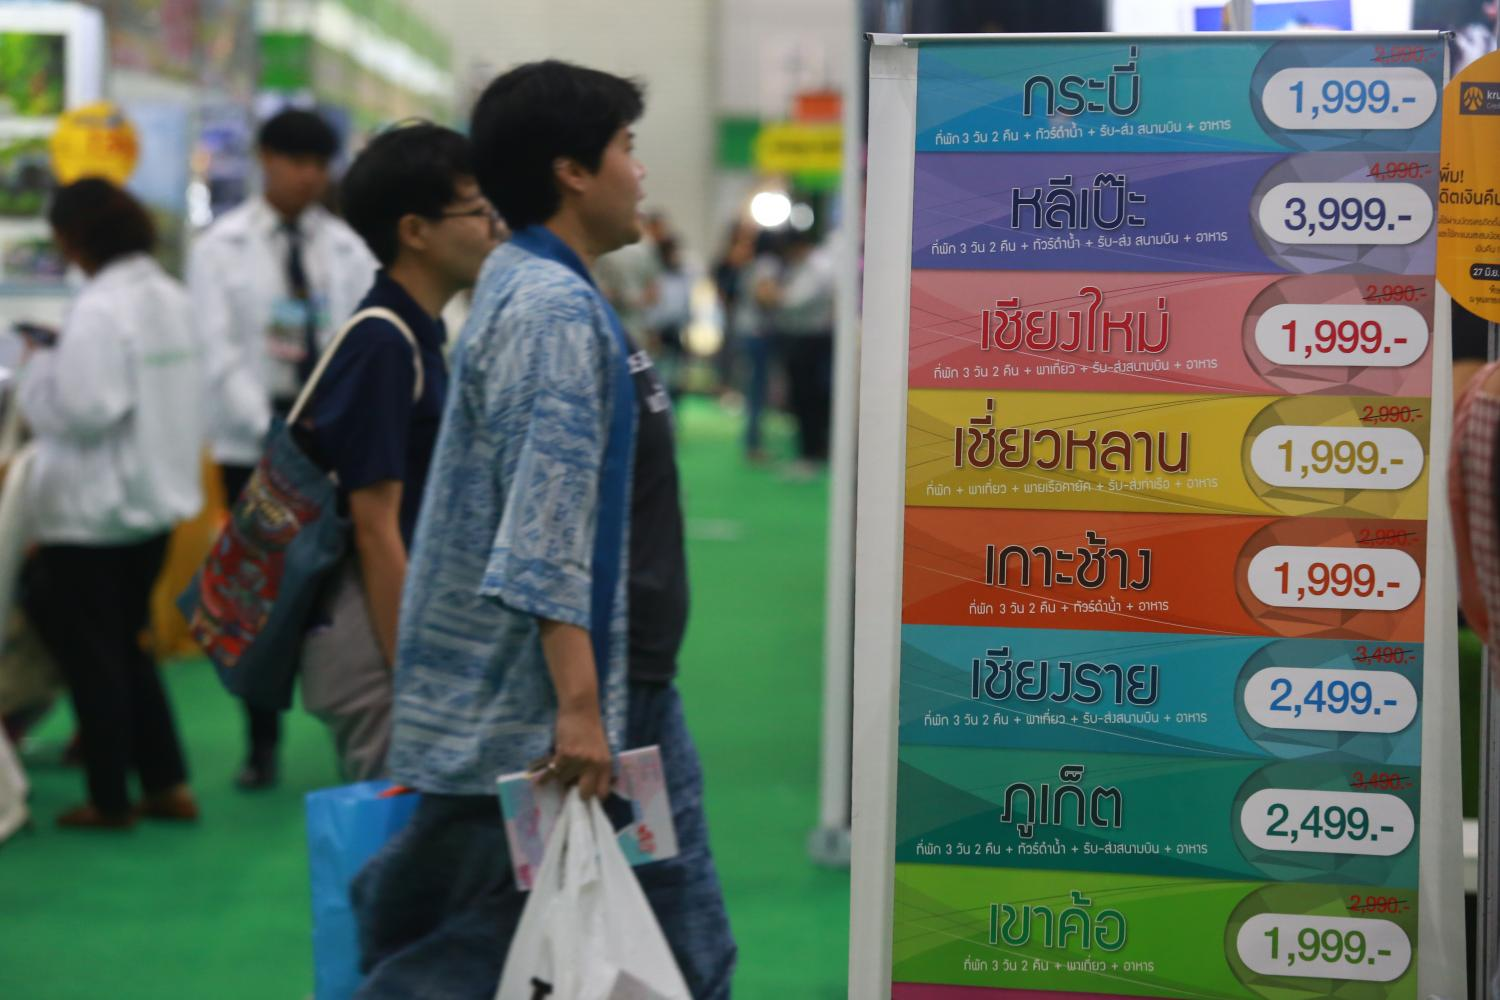 Domestic tourism packages on offer at a tourism fair. (Photo by Somchai Poomlard)